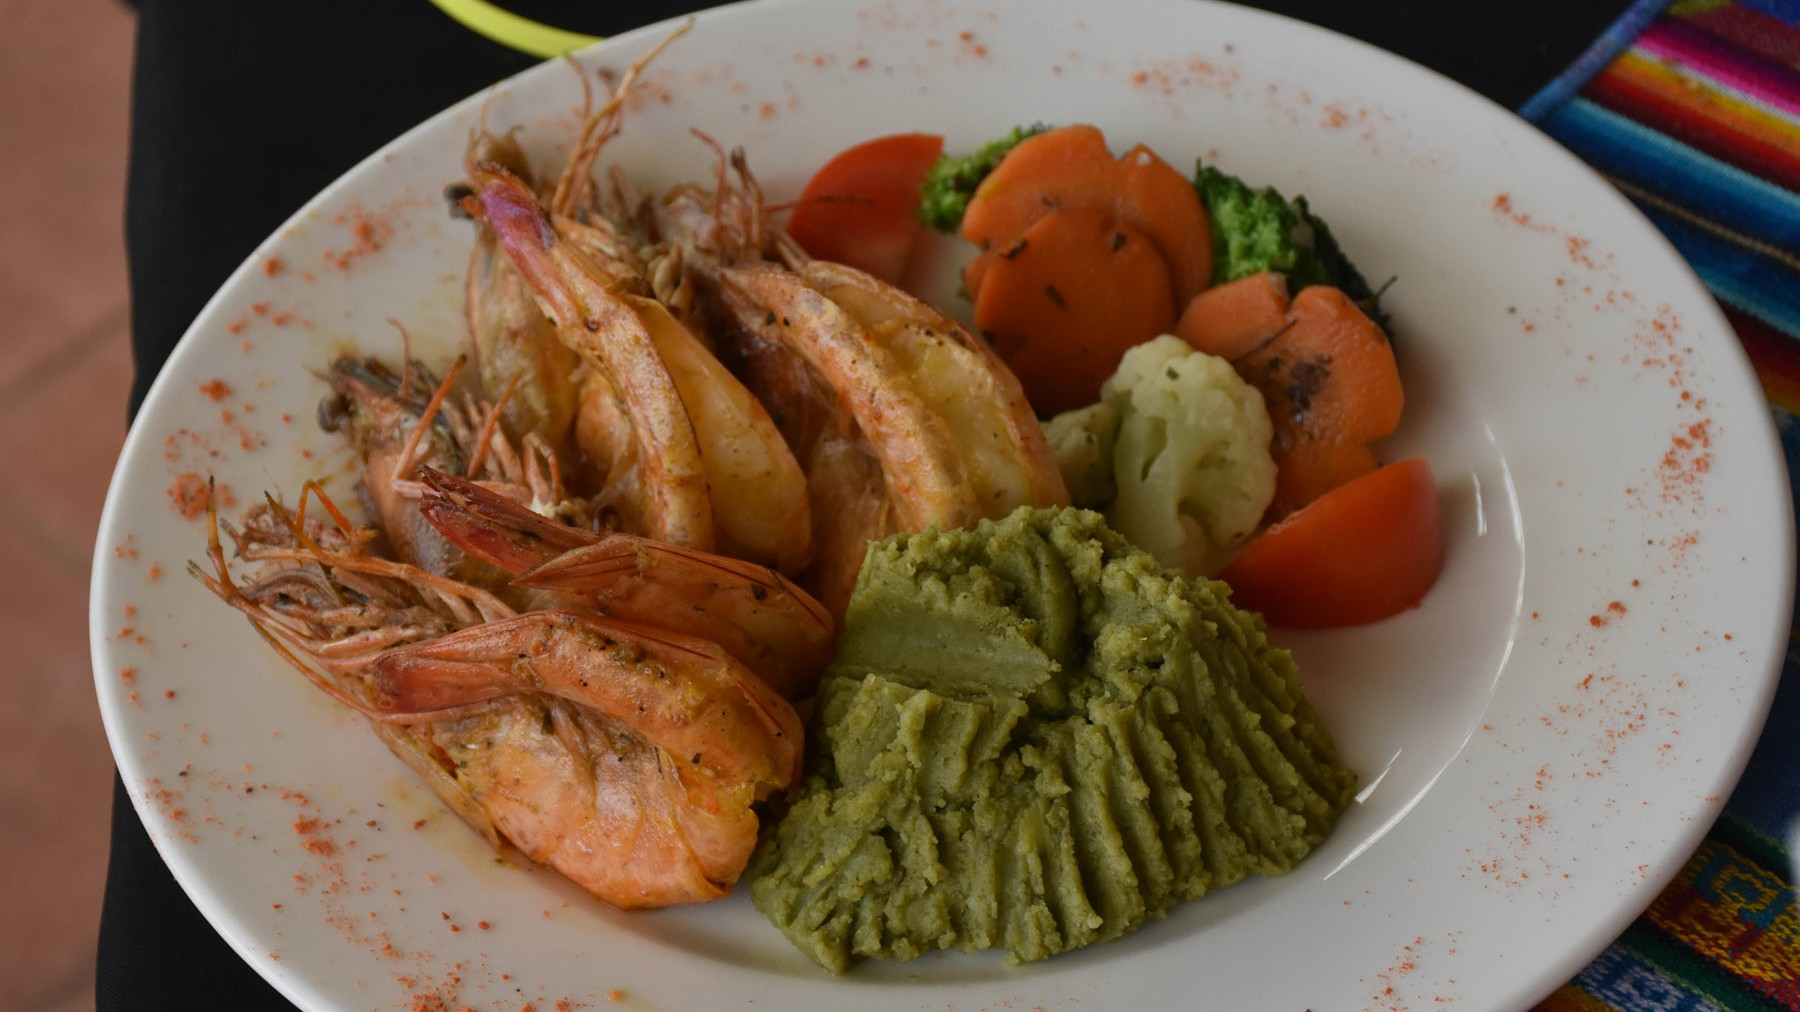 shrimp-with-otoy-and-vegetables_31538106230_o